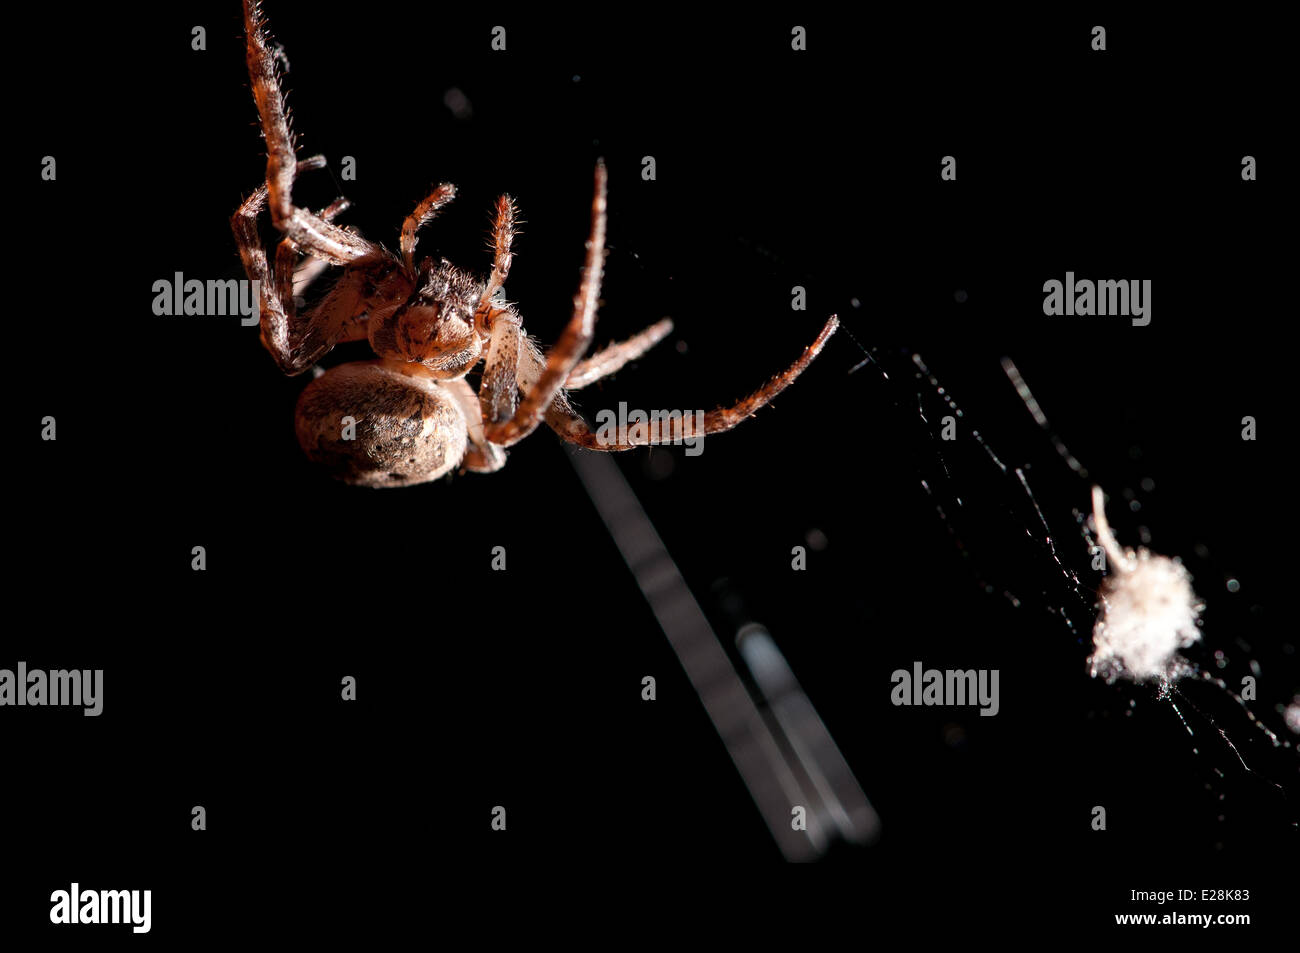 Spider on the web at pitch black night - Stock Image